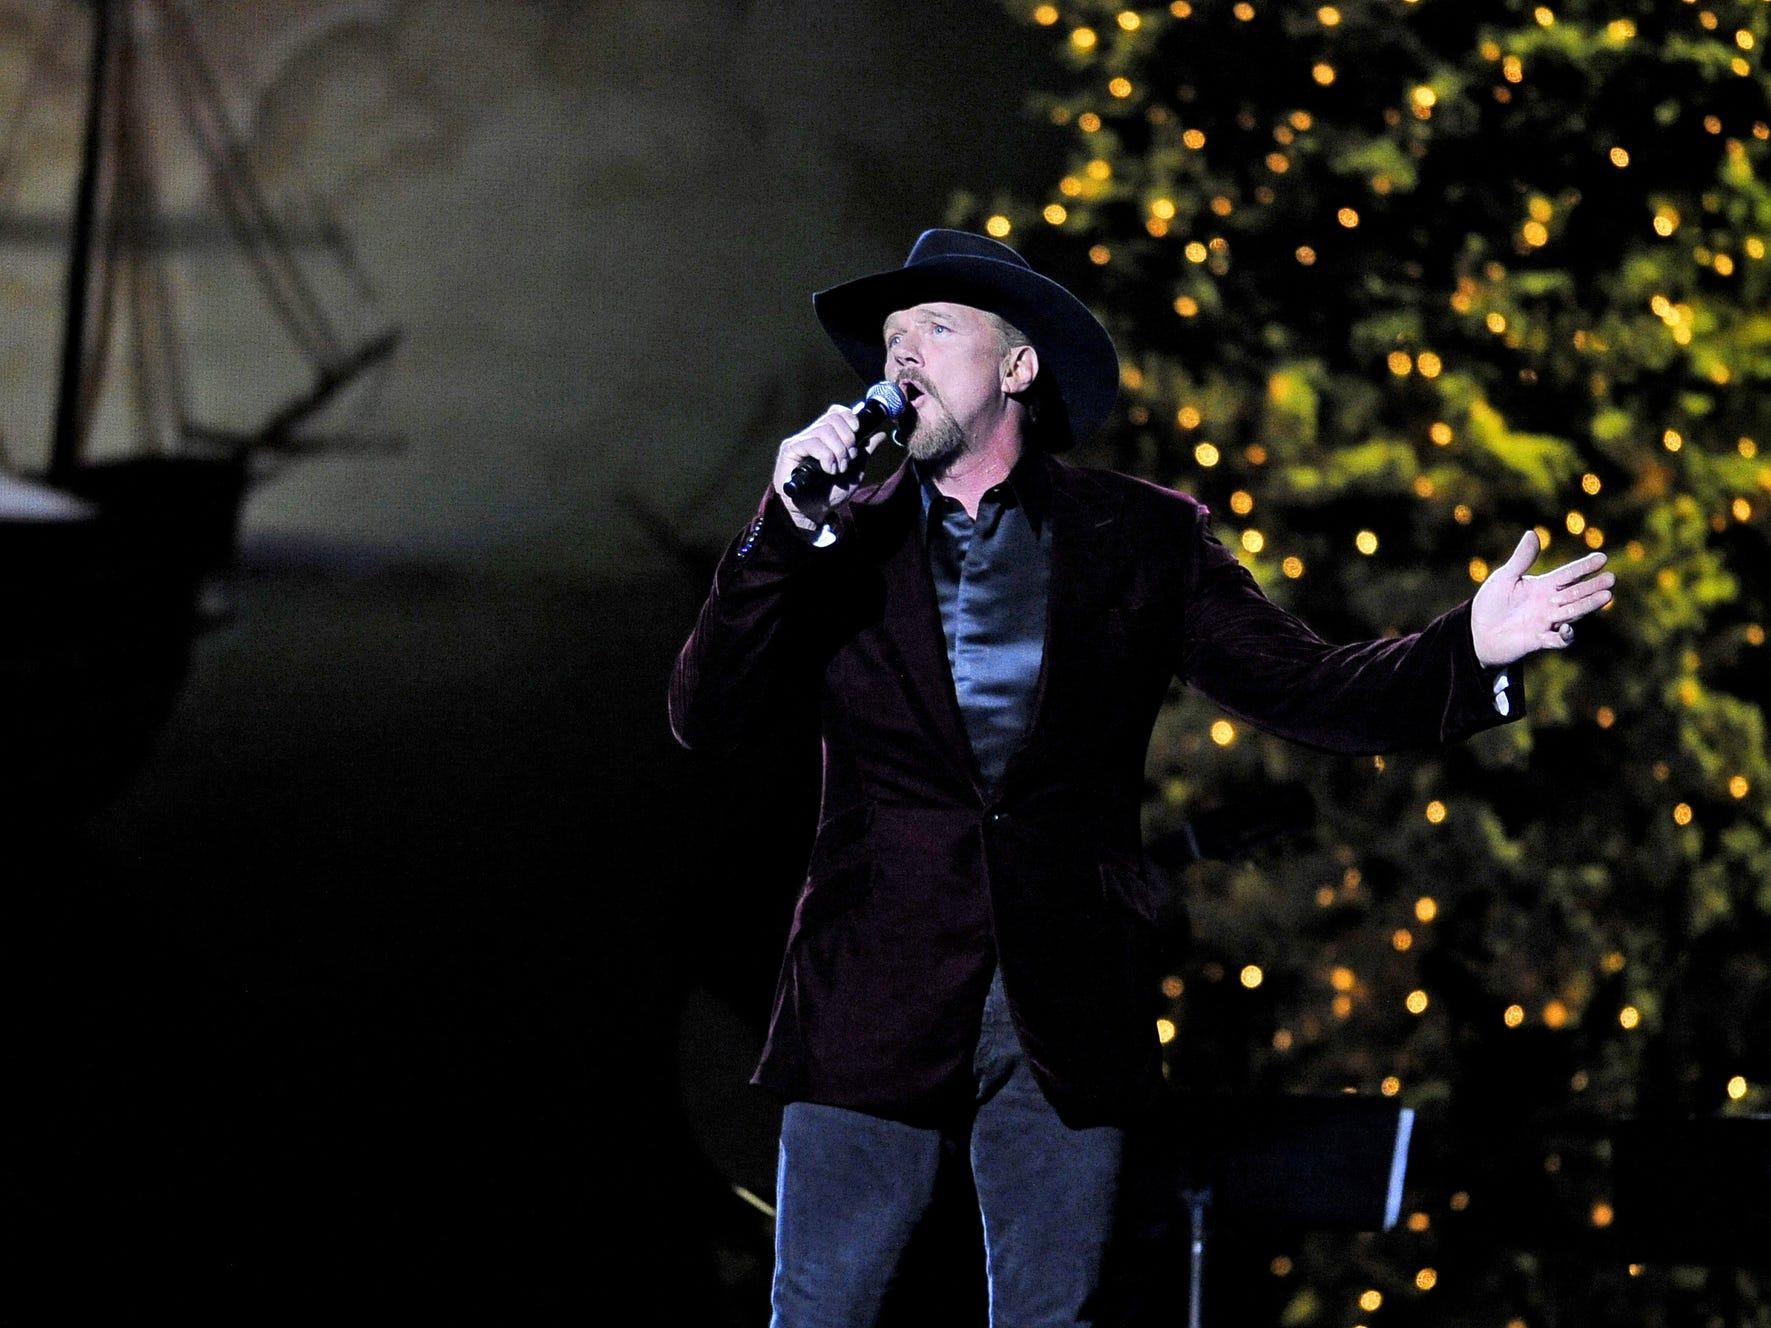 Dec. 1 TRACE ADKINS CHRISTMAS SHOW: Through Dec. 25, Gaylord Opryland Resort & Convention Center's Tennessee Ballroom, $99.99-$129.99, christmasatgaylordopryland.com